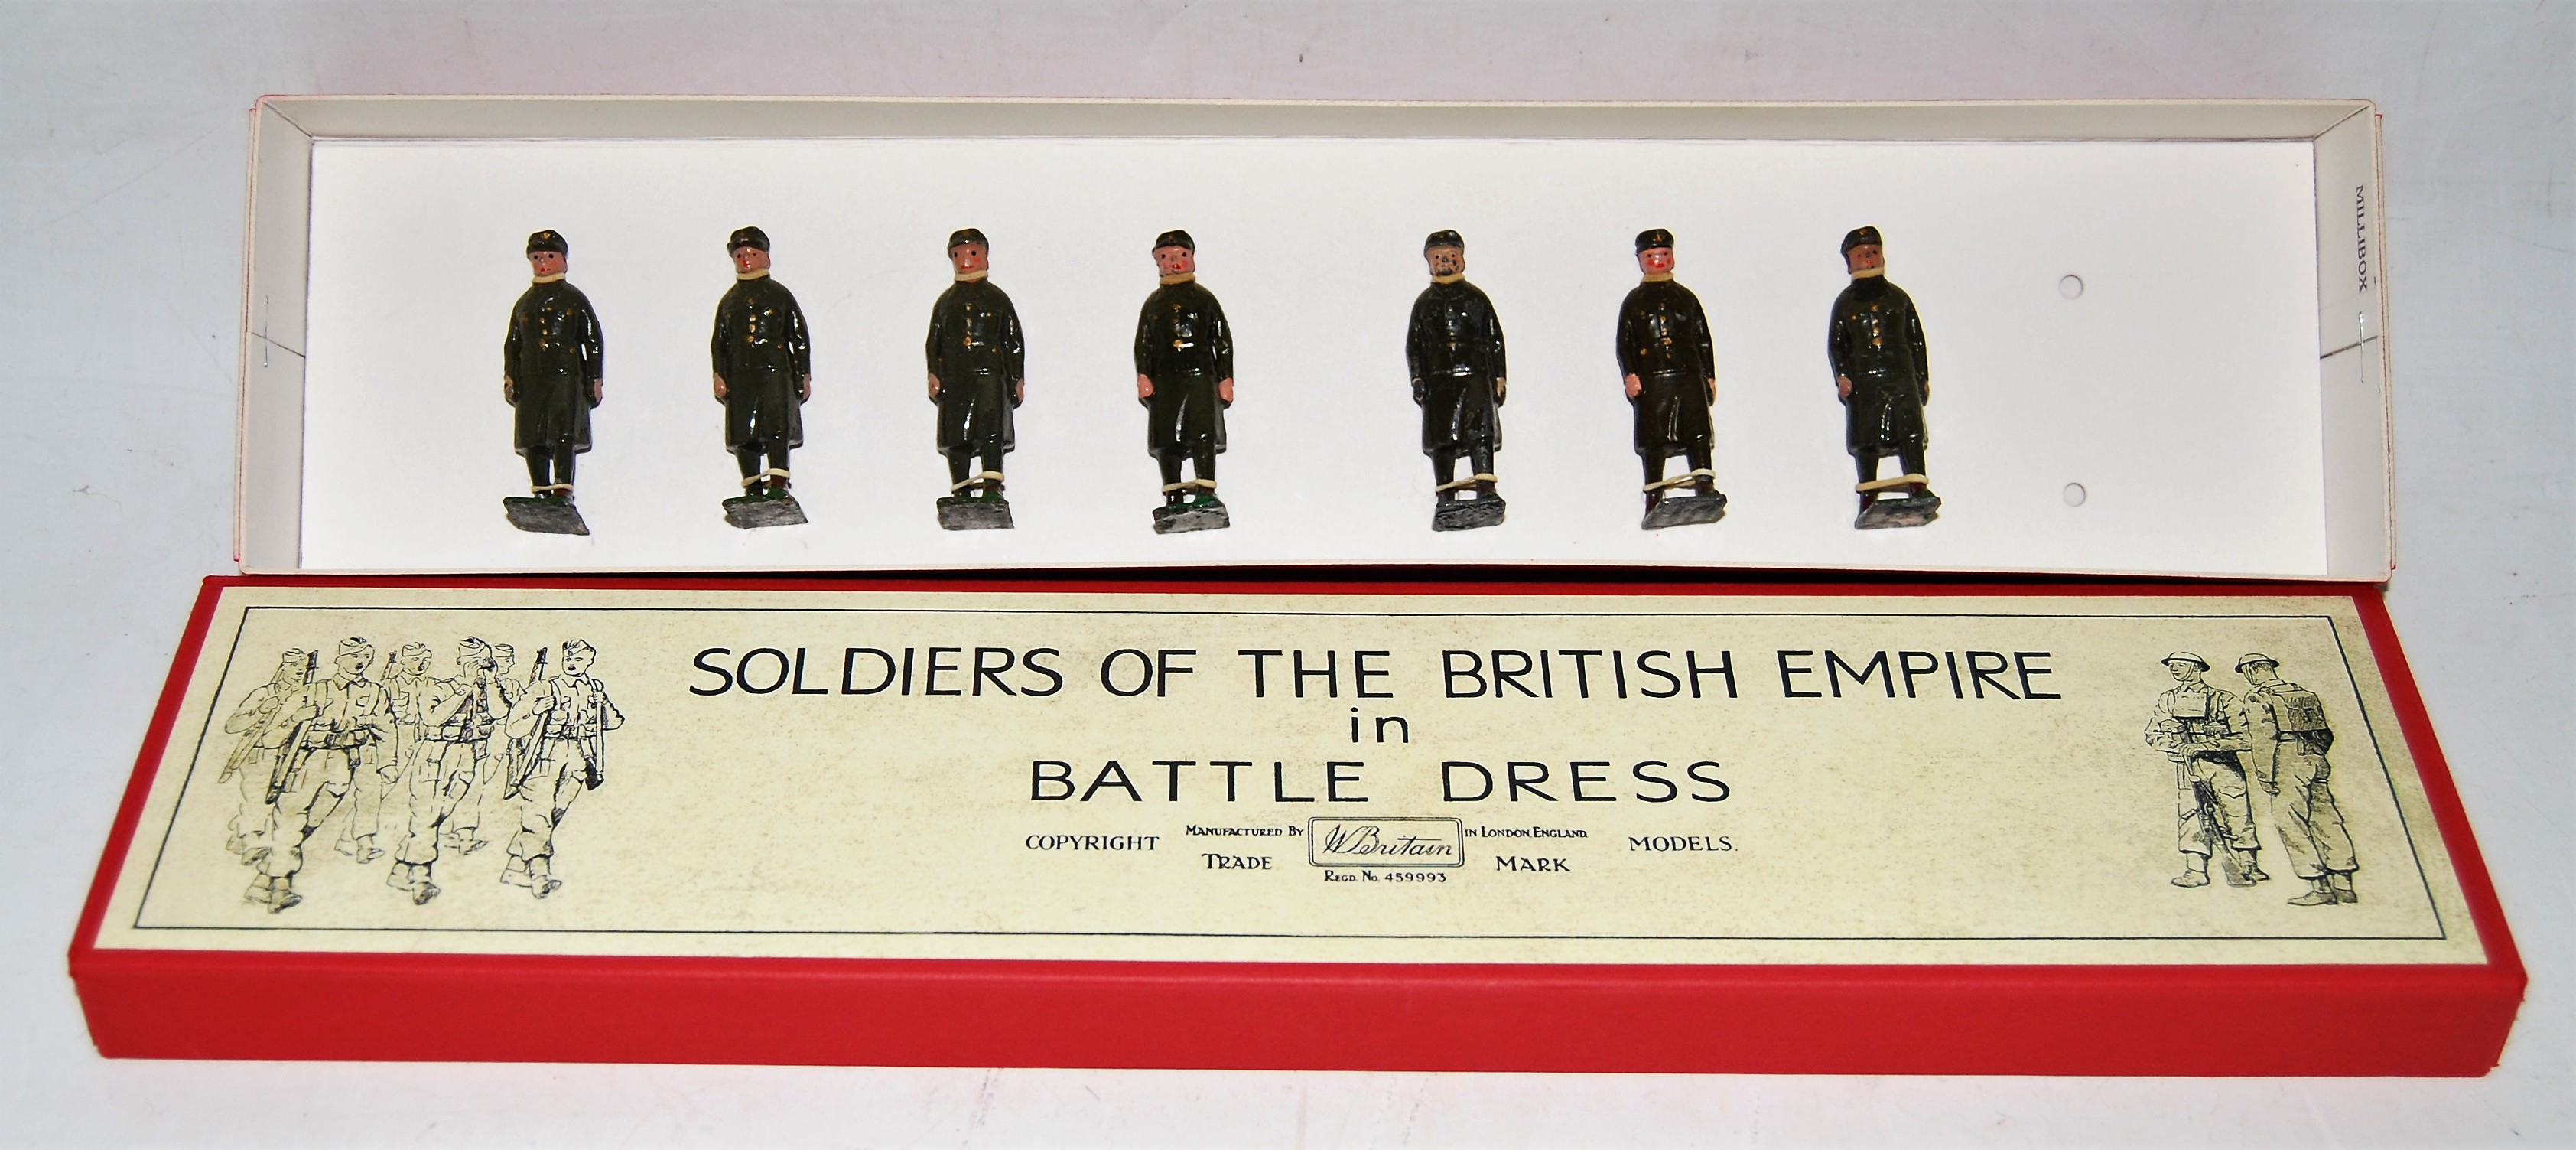 A Britains from set No. 1897 The Royal Army Medical Corps in battle dress with ambulance gift set,